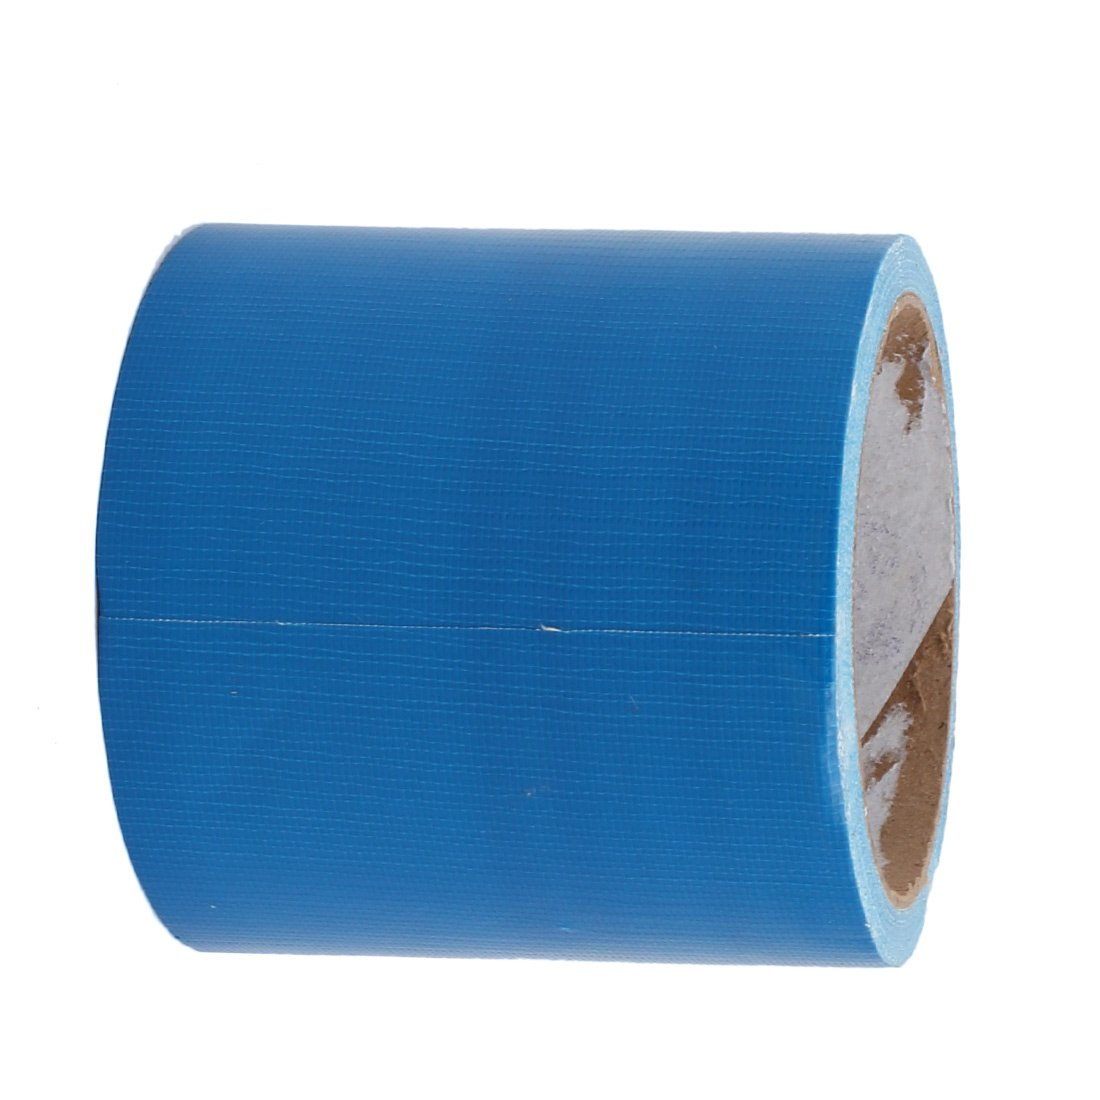 uxcell Blue Single Sided Safety Marking Carpet Tape 4 Inches x 11 Yards